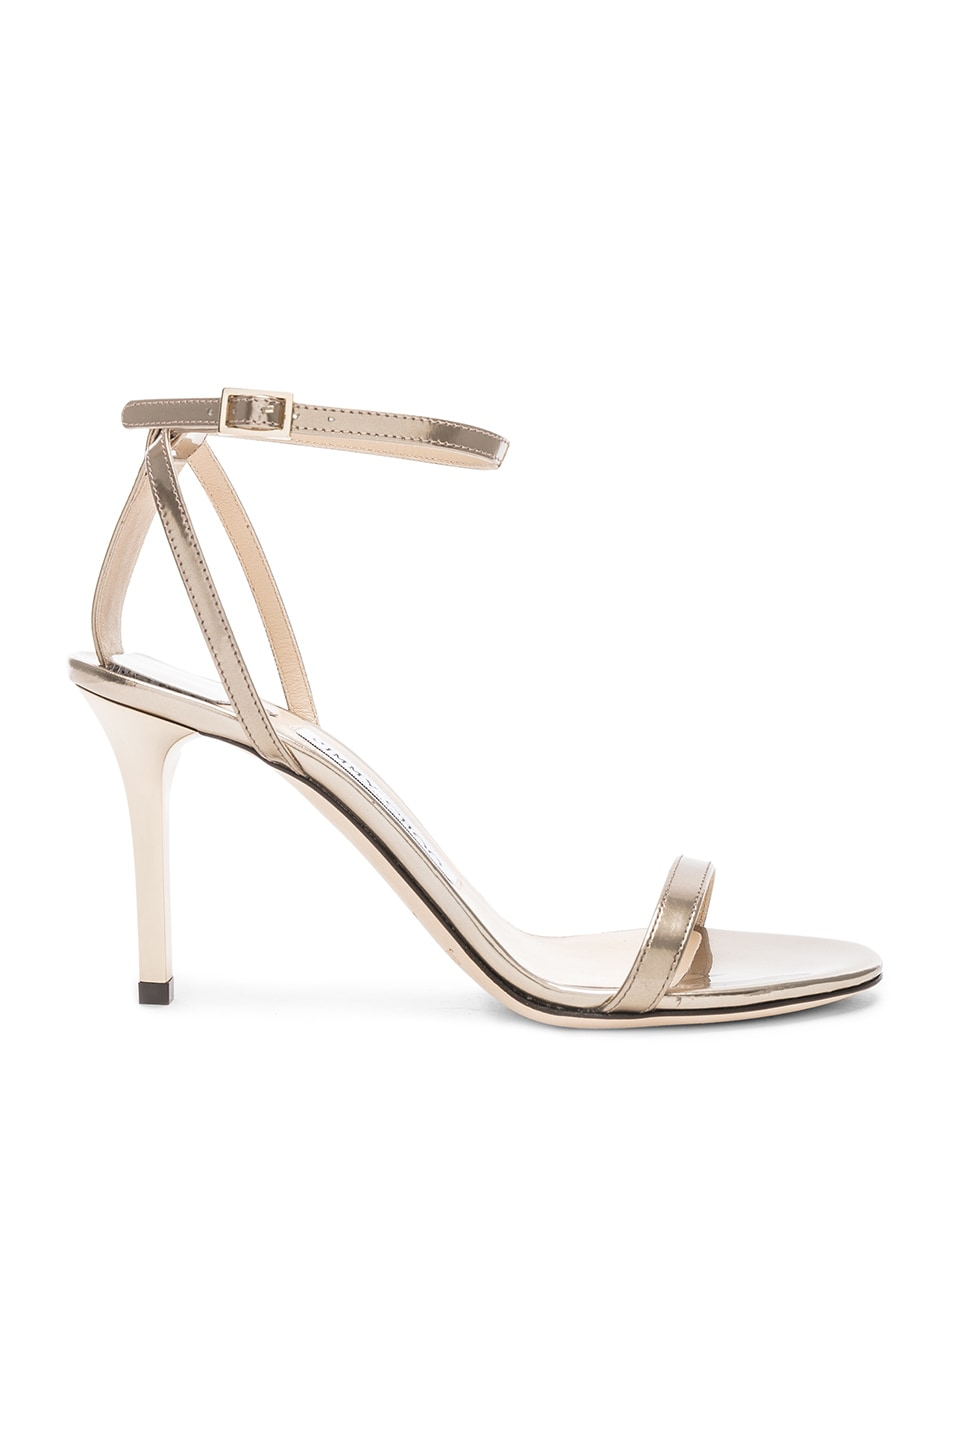 Image 1 of Jimmy Choo Minny 85 Mirror Leather Heel in Gold